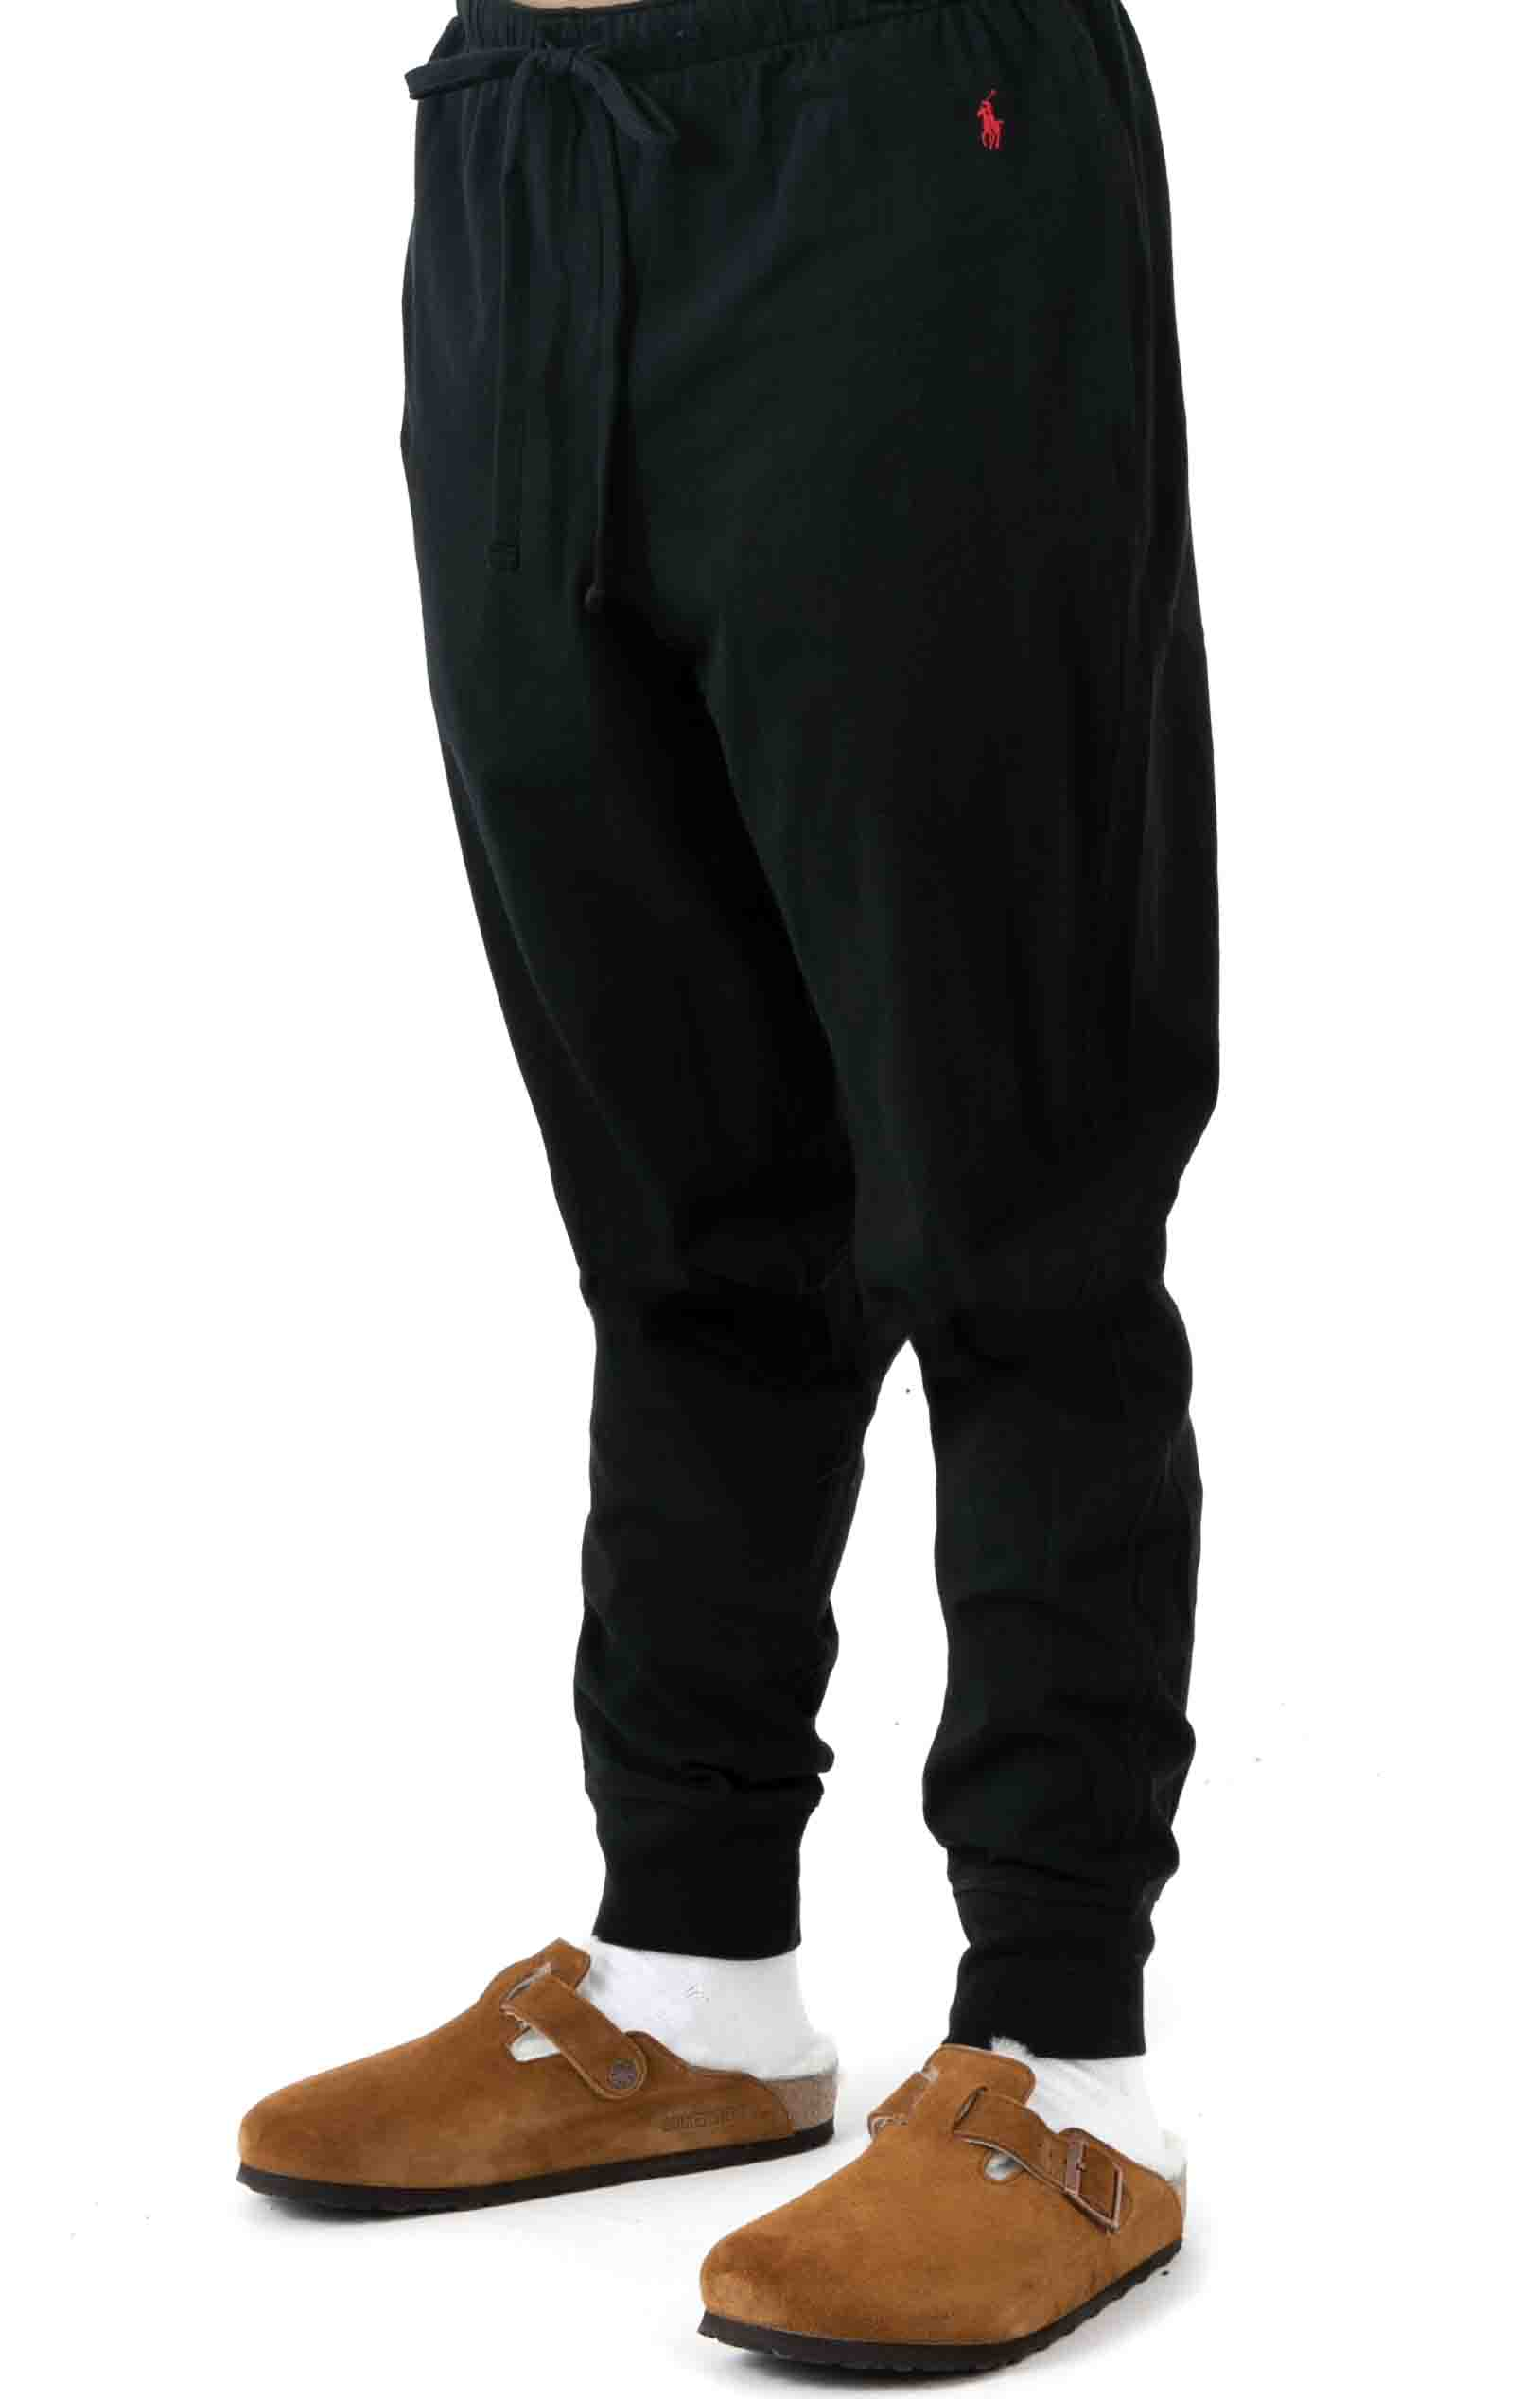 (L204PB) Relaxed Fit Jogger Cuff Sleep Pant - Polo Black